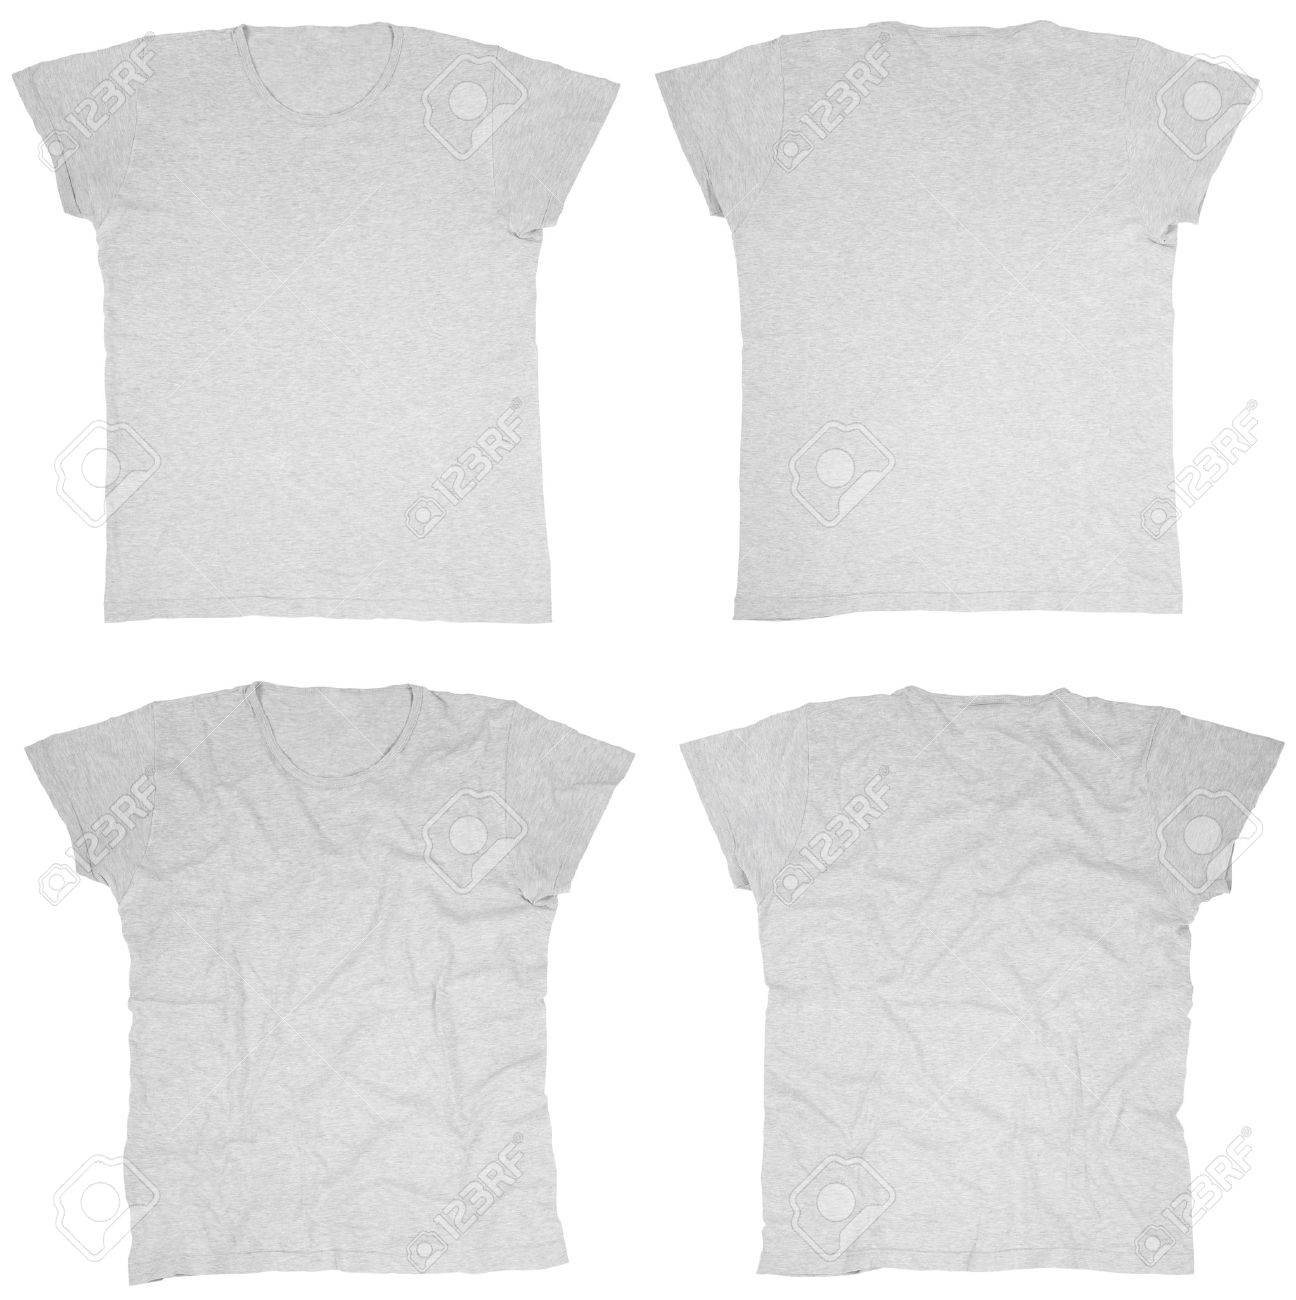 Blank grey t-shirts front and back Stock Photo - 11370483